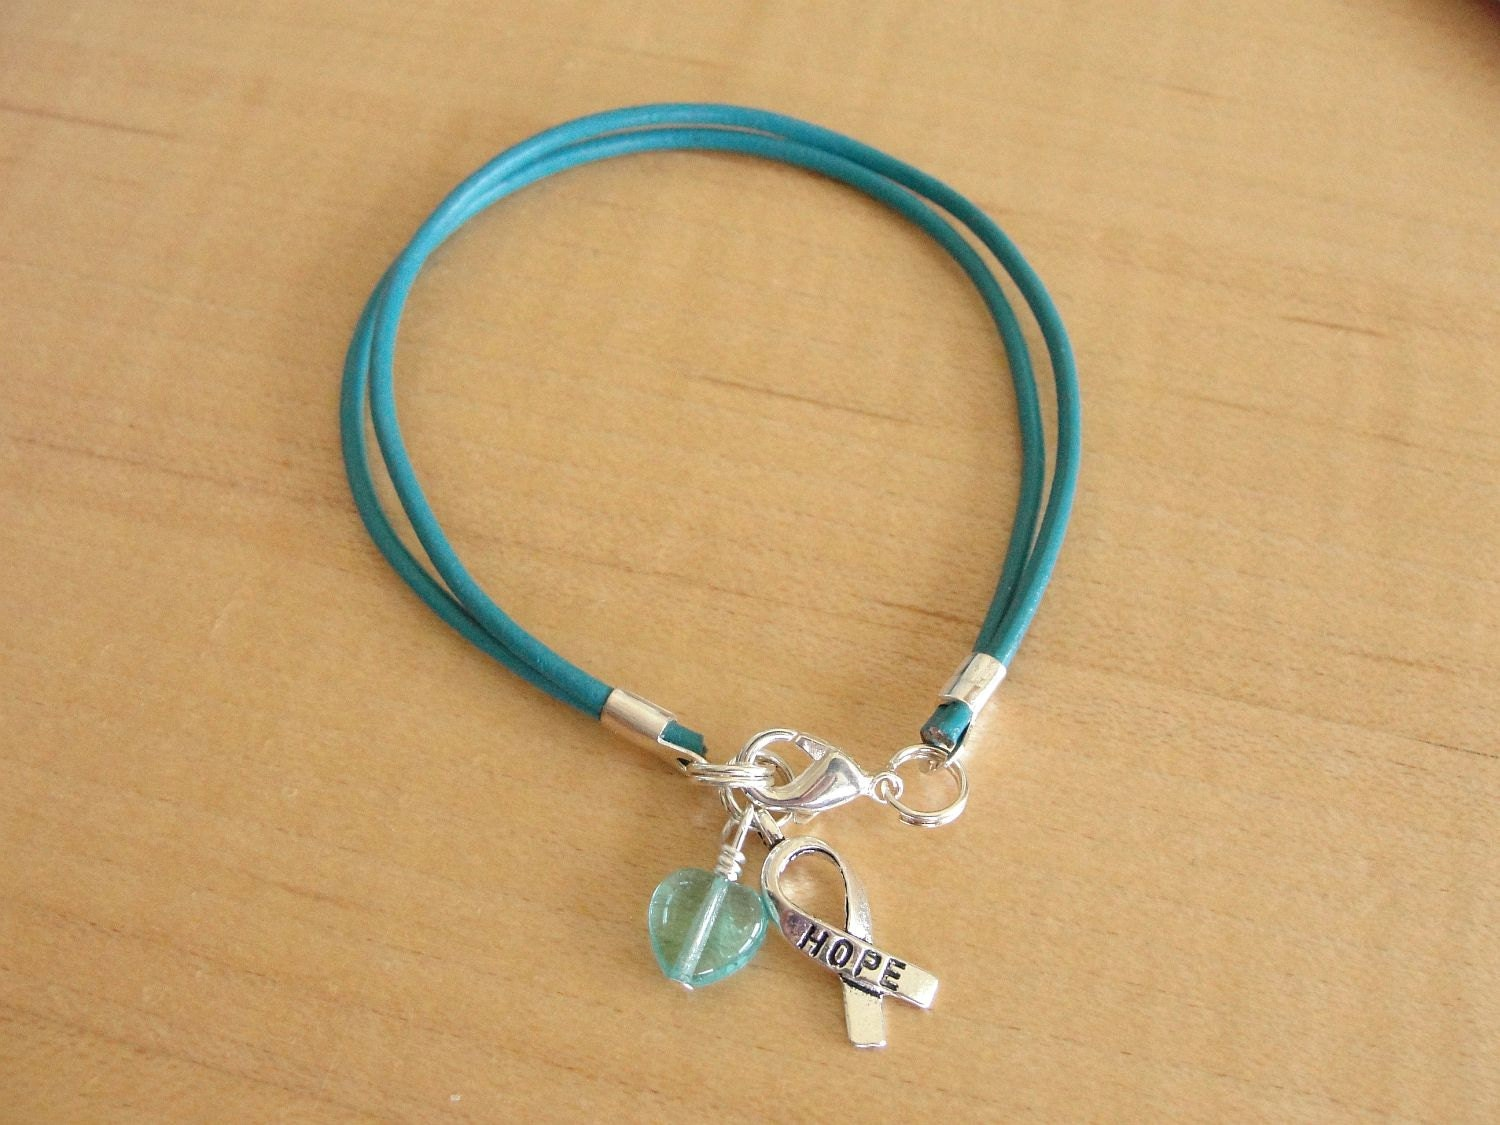 cancer ovarian bullying bracelet pos kidney x fragile scleroderma anti awareness disease polycystic ocd pin